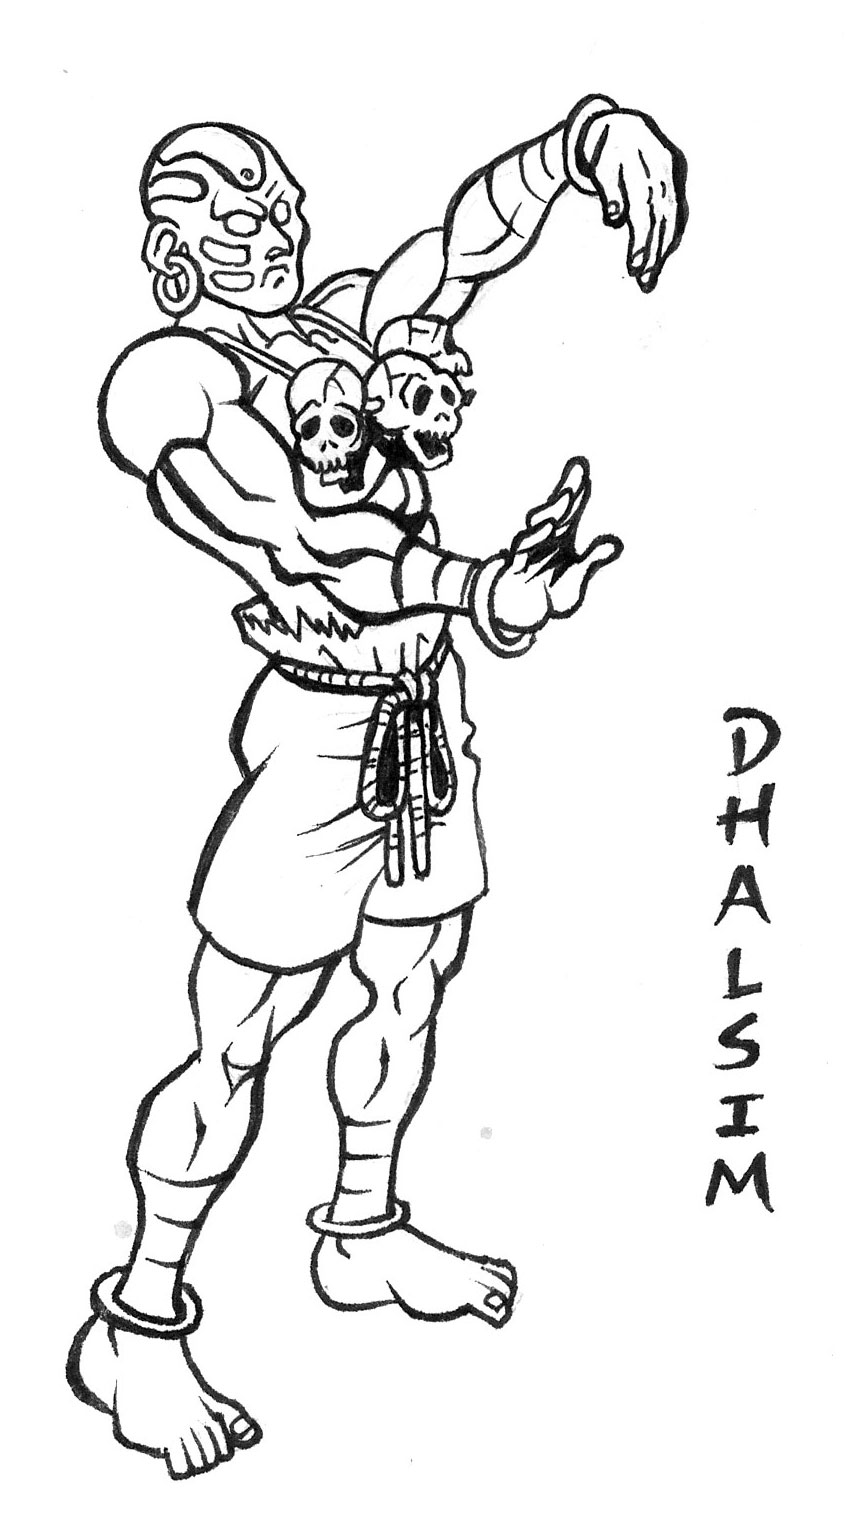 Dhalsim Street Fighter Drawing By Animegris On Deviantart